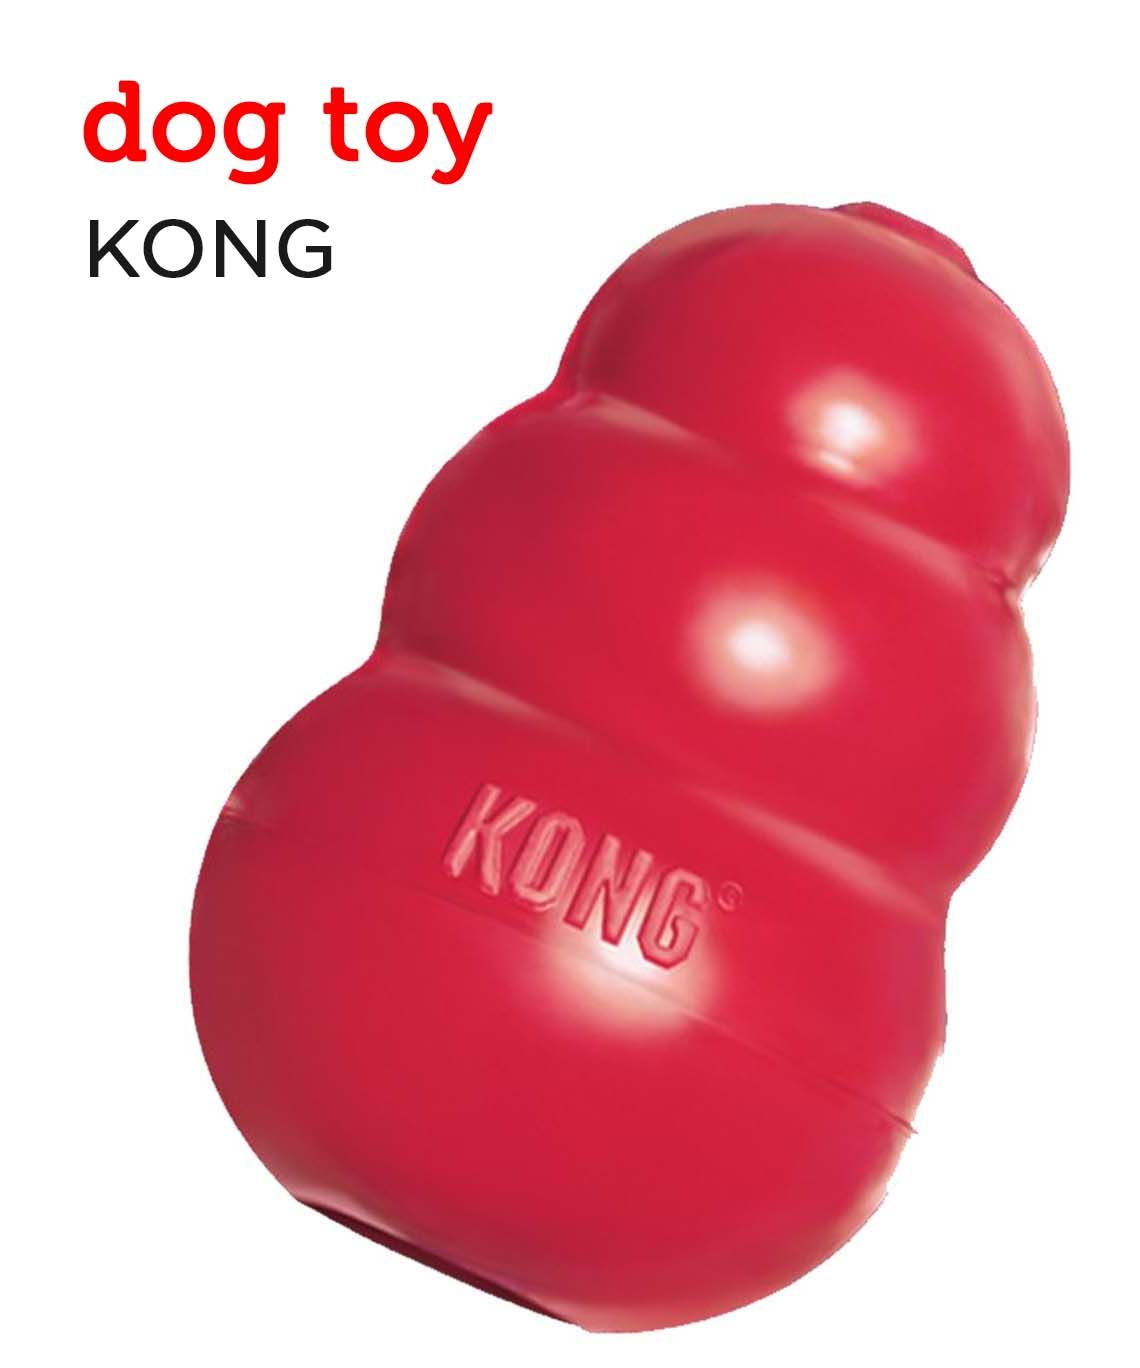 KONG dog toy from Petco's Holiday Gift Guide